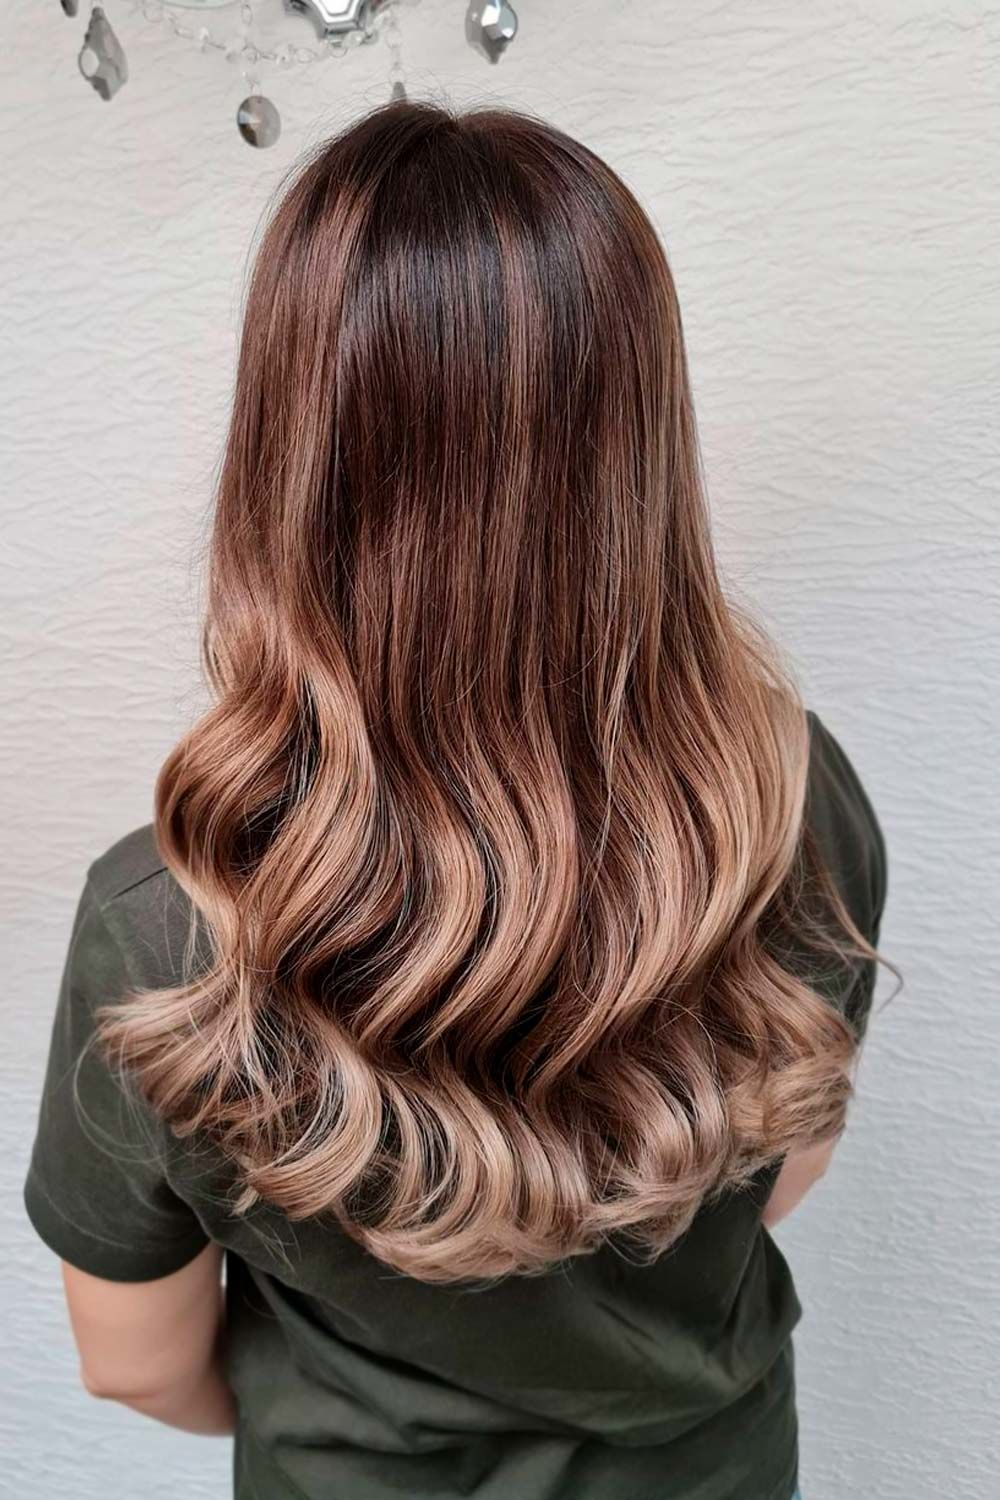 Brown Hair With Blonde Highlights , best highlights for dark brown hair, chocolate brown hair with blonde highlights, highlight for dark hair